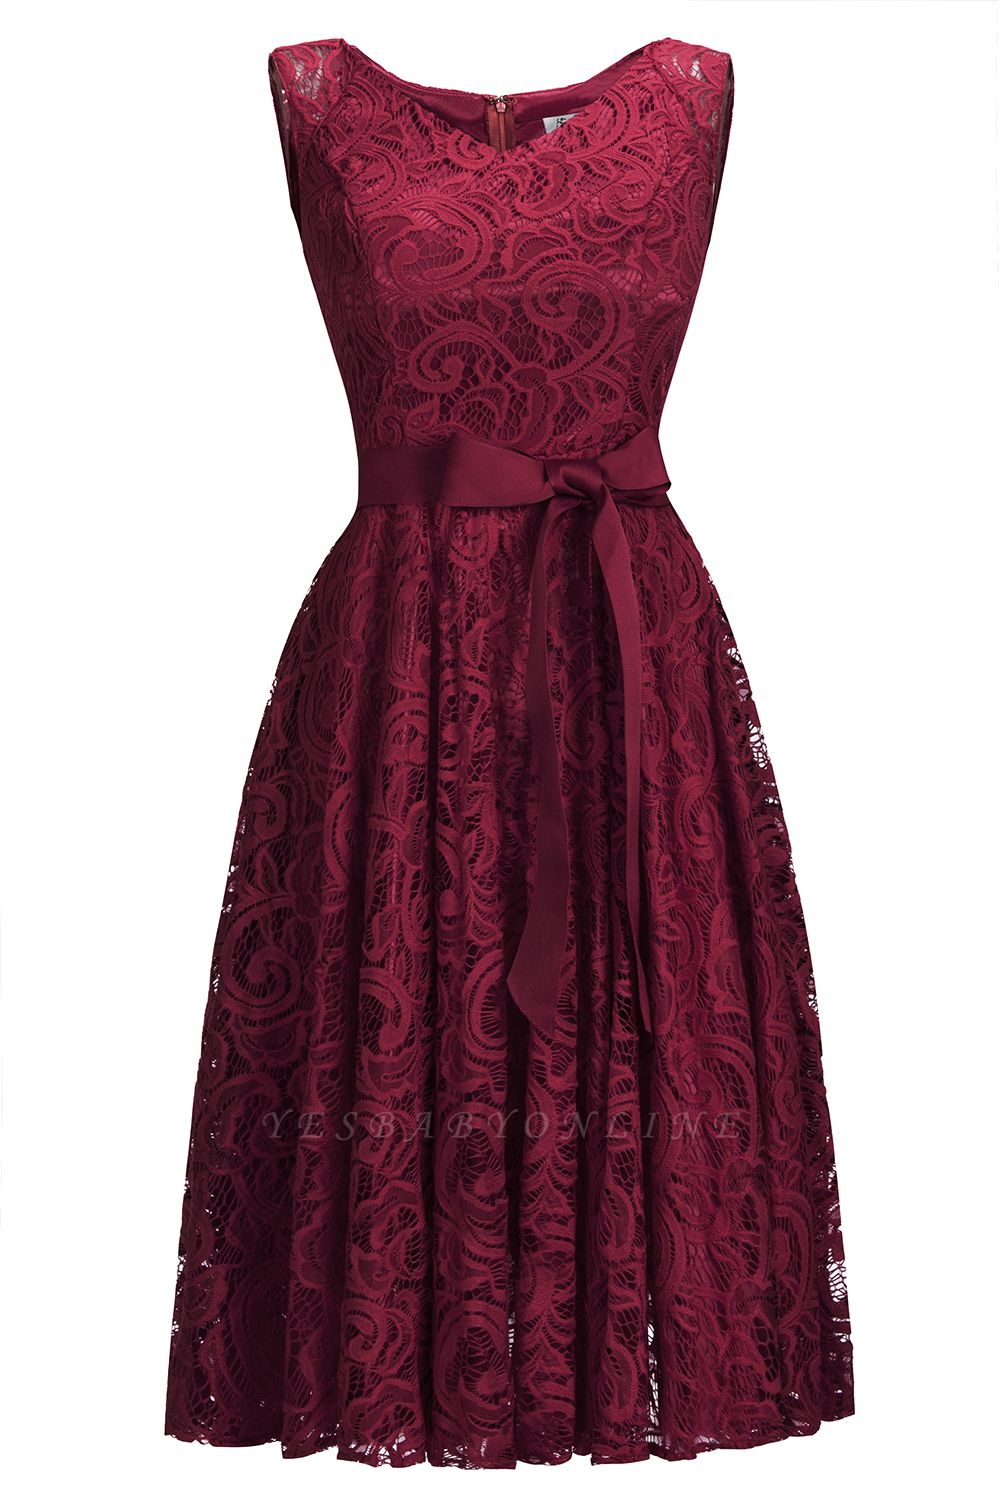 Cheap Simple Sleeveless A-line Red Lace Dress with Ribbon Bow in Stock